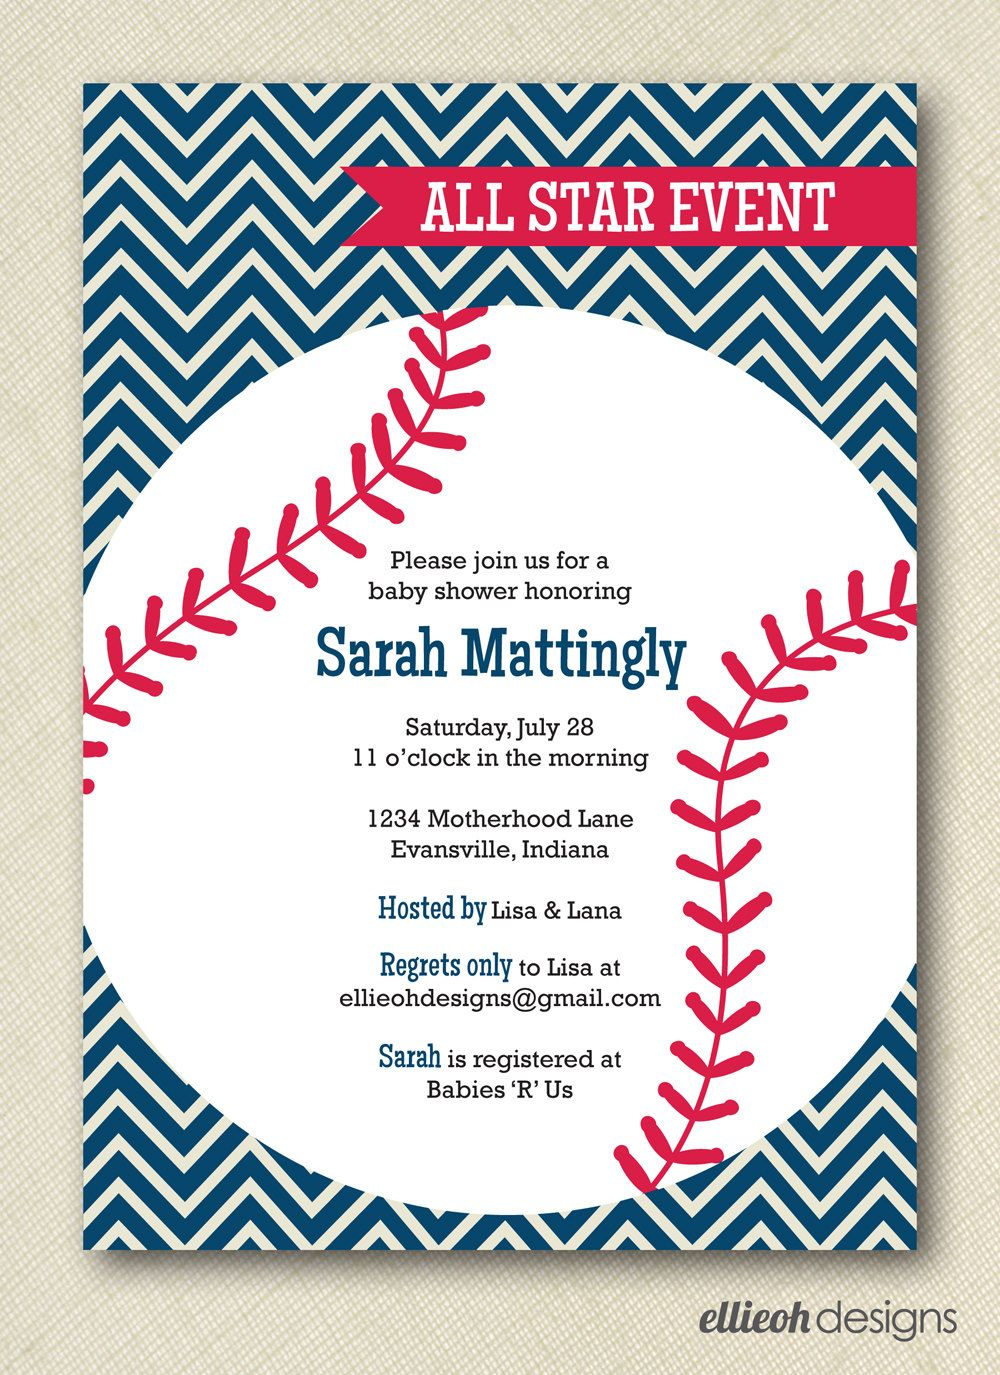 17 Best images about Baseball invitation on Pinterest | Baby boy ...